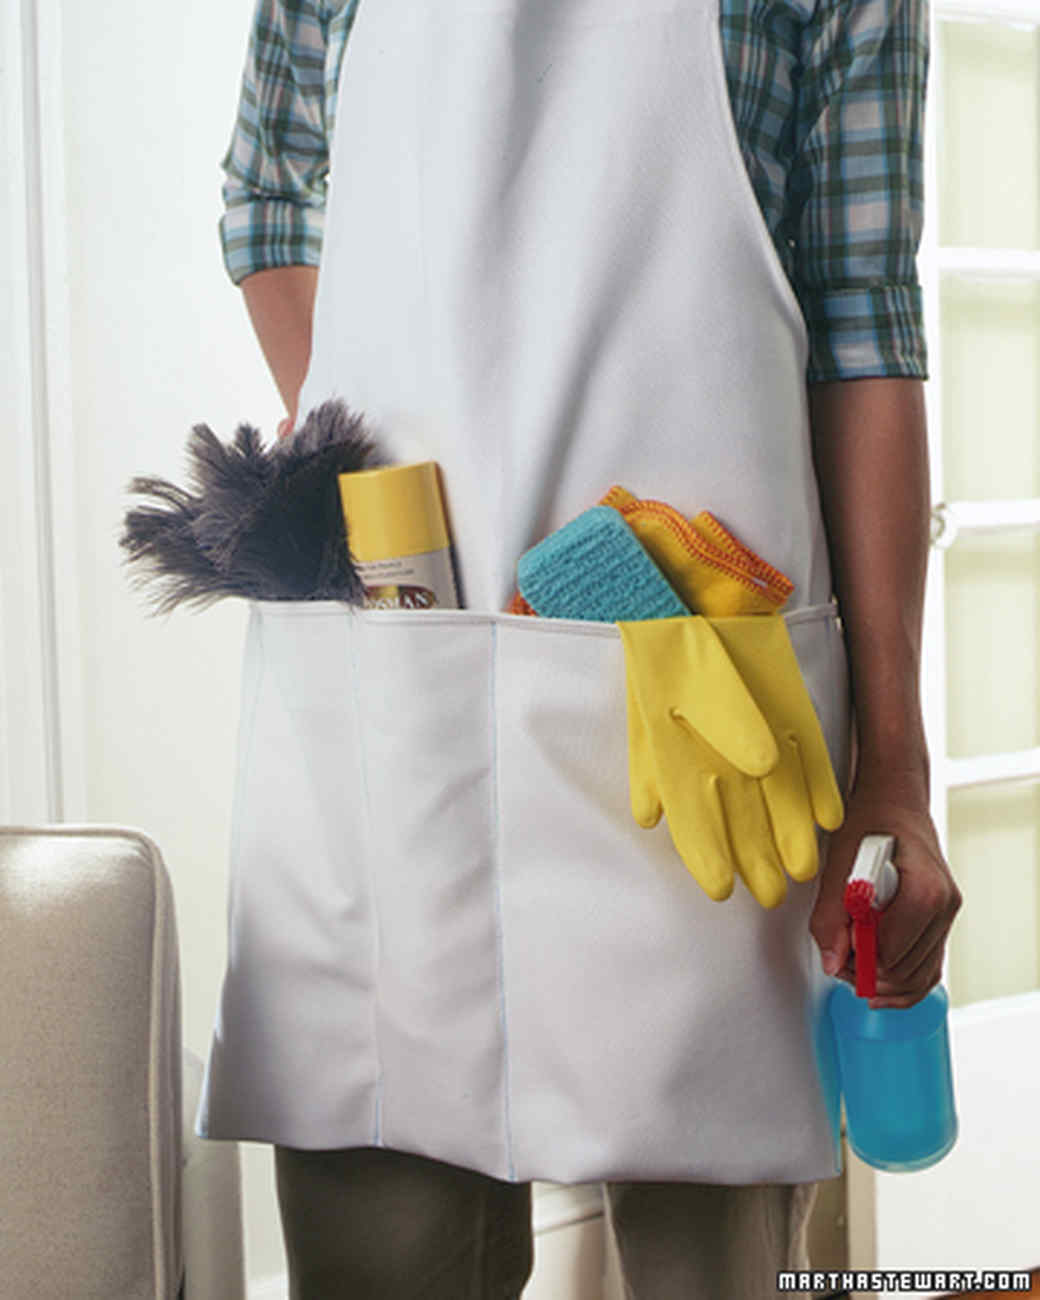 Carryall Apron - Before you throw out that old kitchen apron, stash your essential spring-cleaning supplies in the pockets and use it as you go from room to room. It will leave your hands free to scrub and polish and you won't have to lug a heavy cleaning bucket around the house.To create storage compartments, turn up the bottom 12 to 18 inches of a long apron. Determine pocket widths by using the size of your cleaning supplies as guides. Stitch vertically using a sewing machine